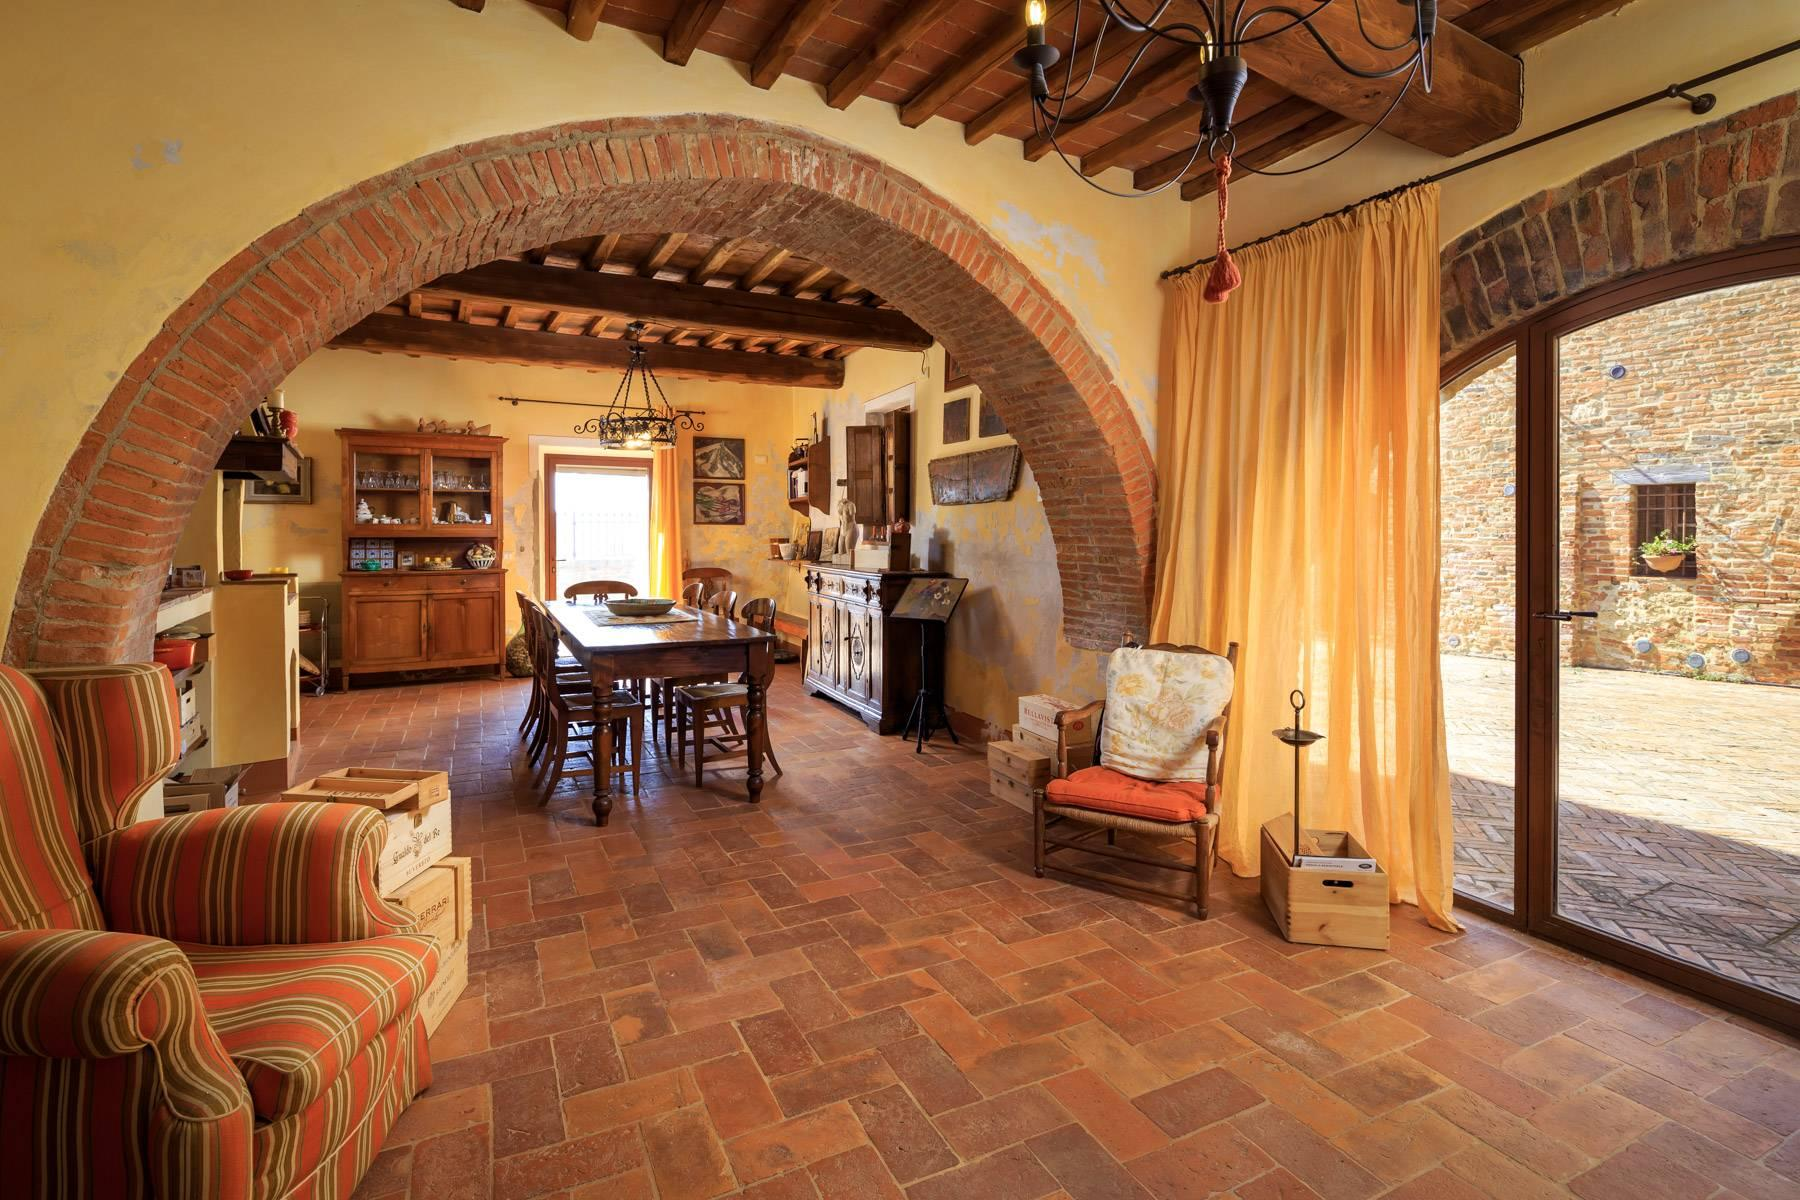 Wonderful tuscan countryhouse on the hills around Siena - 6